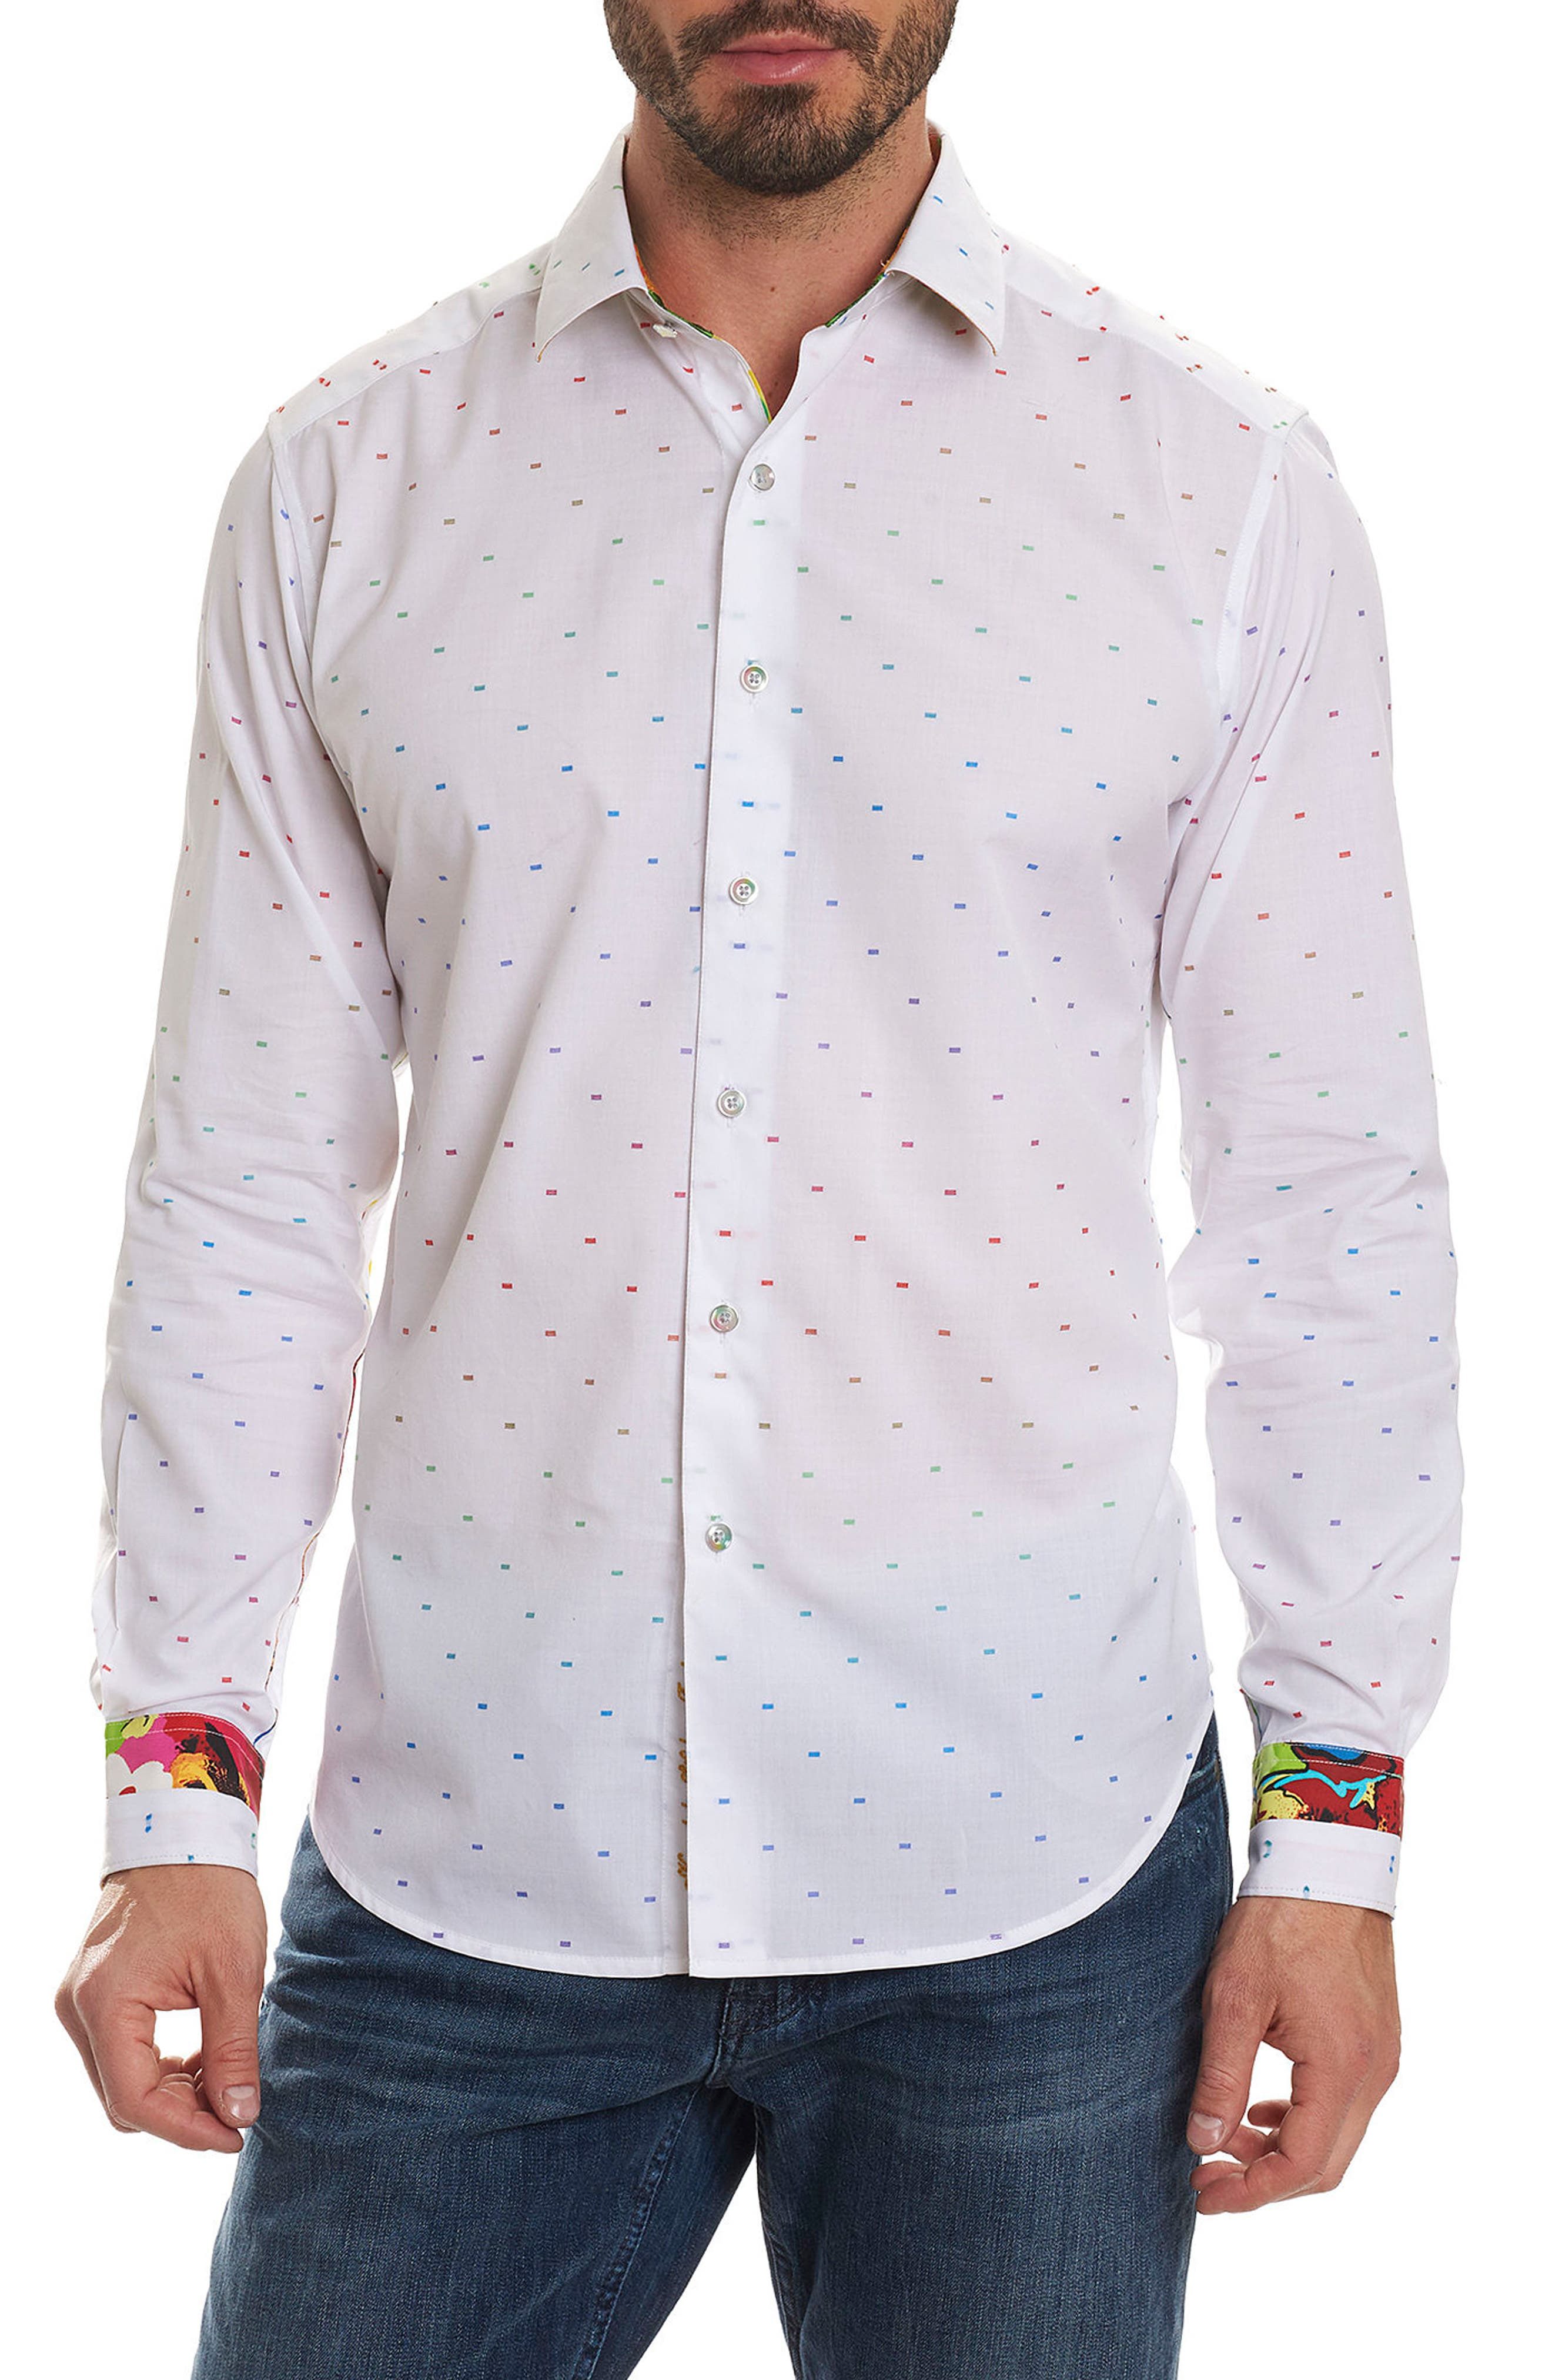 Karyan Limited Edition Classic Fit Sport Shirt,                         Main,                         color, 100